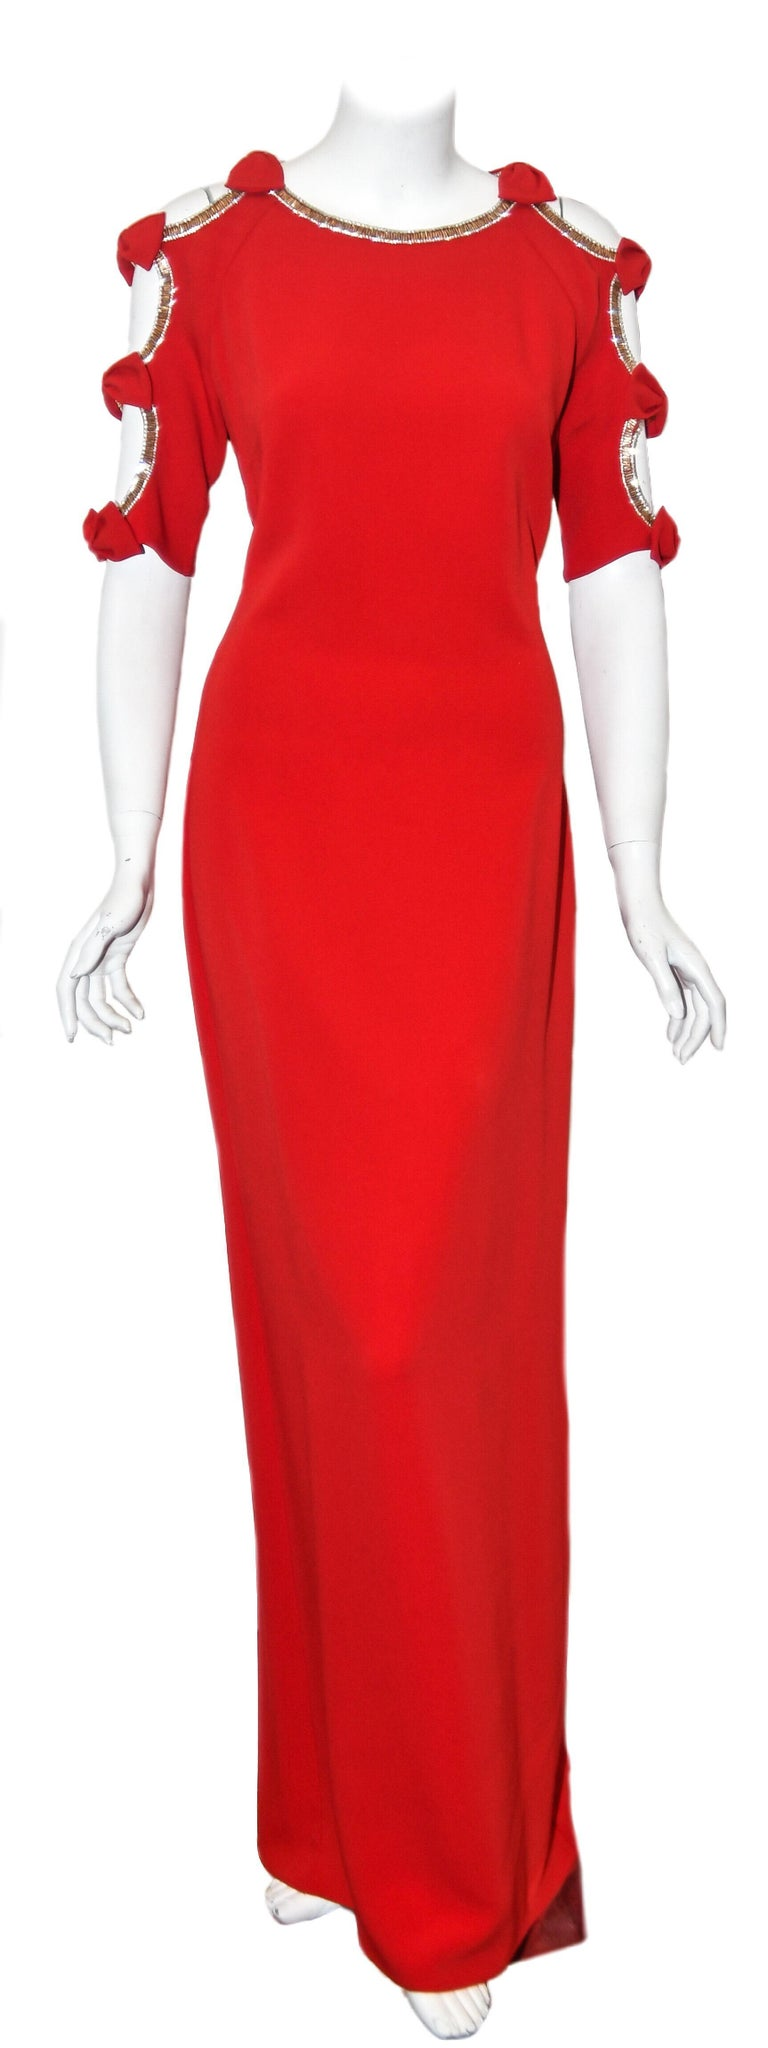 Jenny Packham can almost be classified as the official designer of the royals. This designer has unique and exceptional gowns for all occasions.  This red cold shoulder long evening dress has a beaded trim around neckline, shoulders and sleeves. The